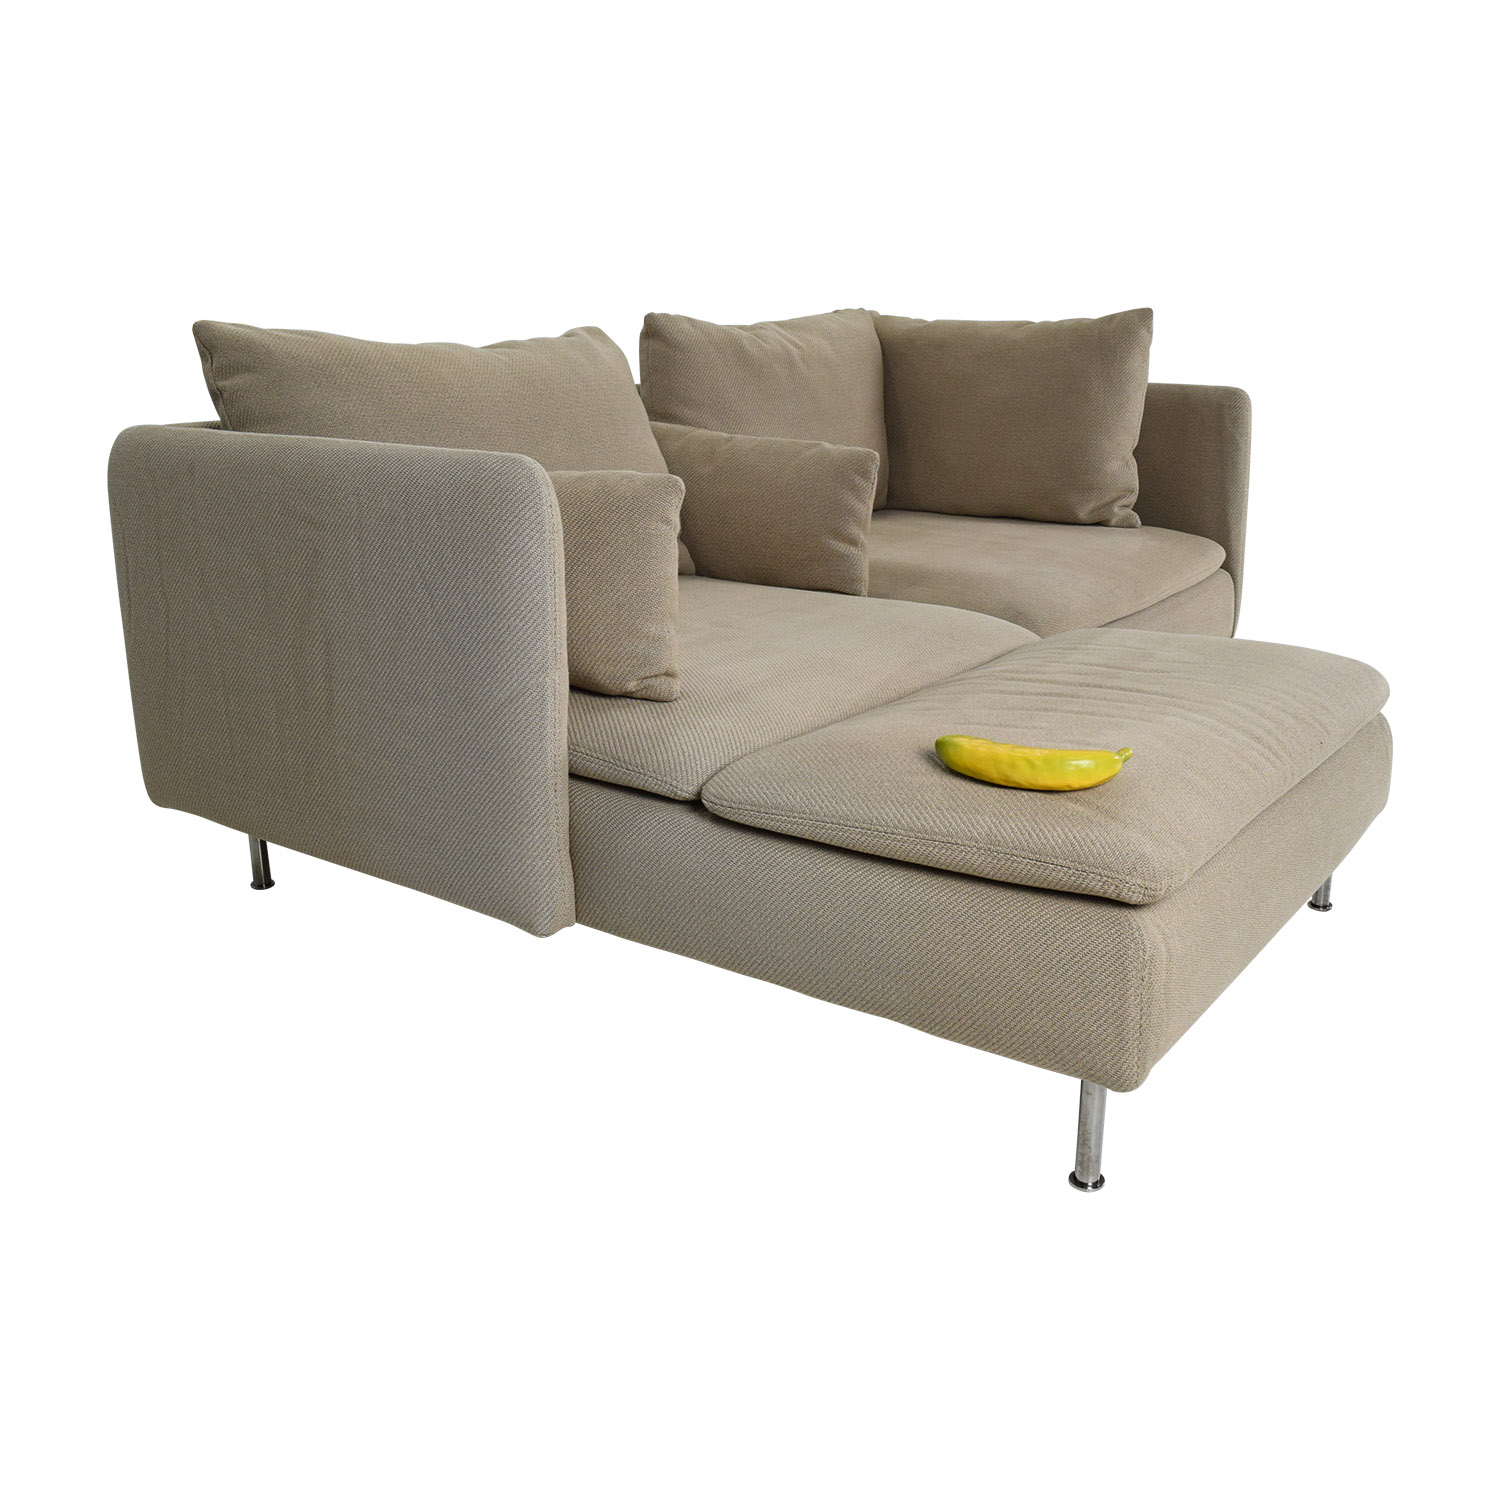 ... Buy IKEA Soderhamn Sectional Sofa Online ... Part 47